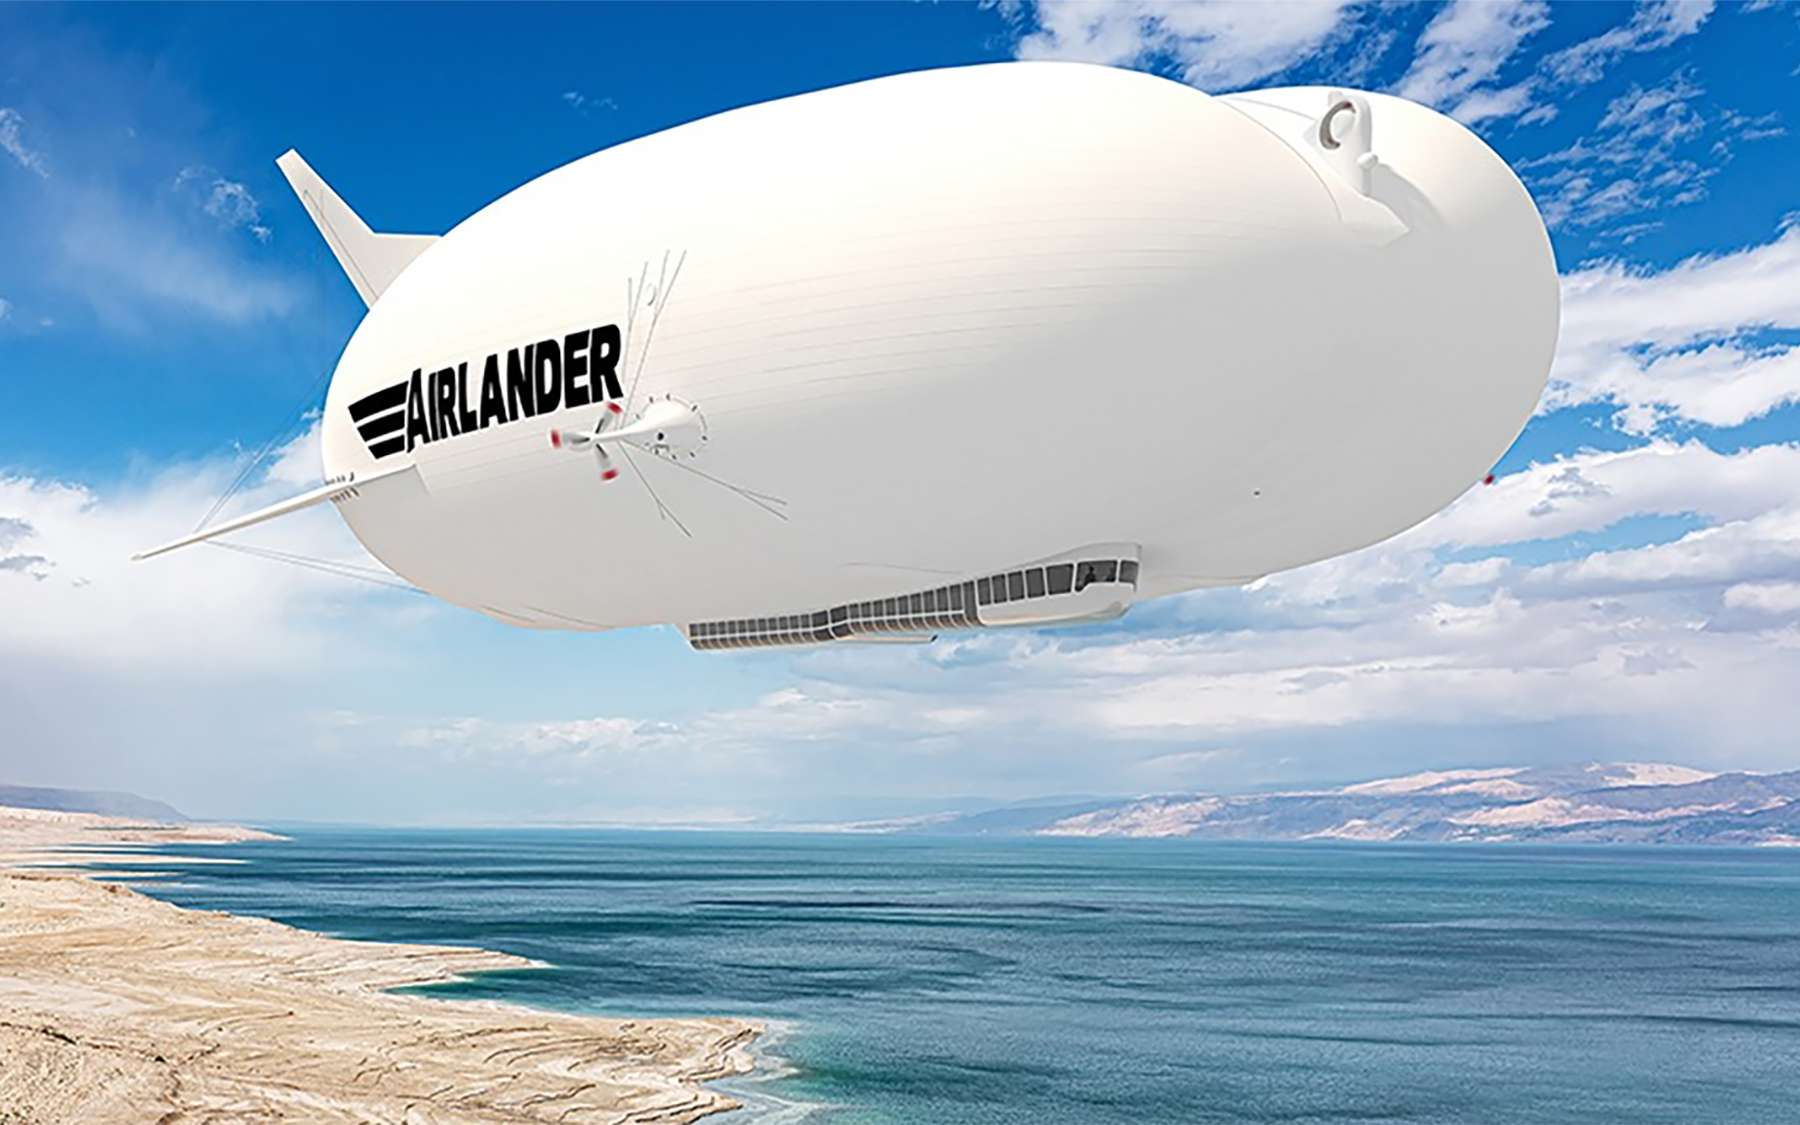 Vue d'artiste de l'Airlander-10, un projet d'avion-dirigeable. © Hybrid Air Vehicles